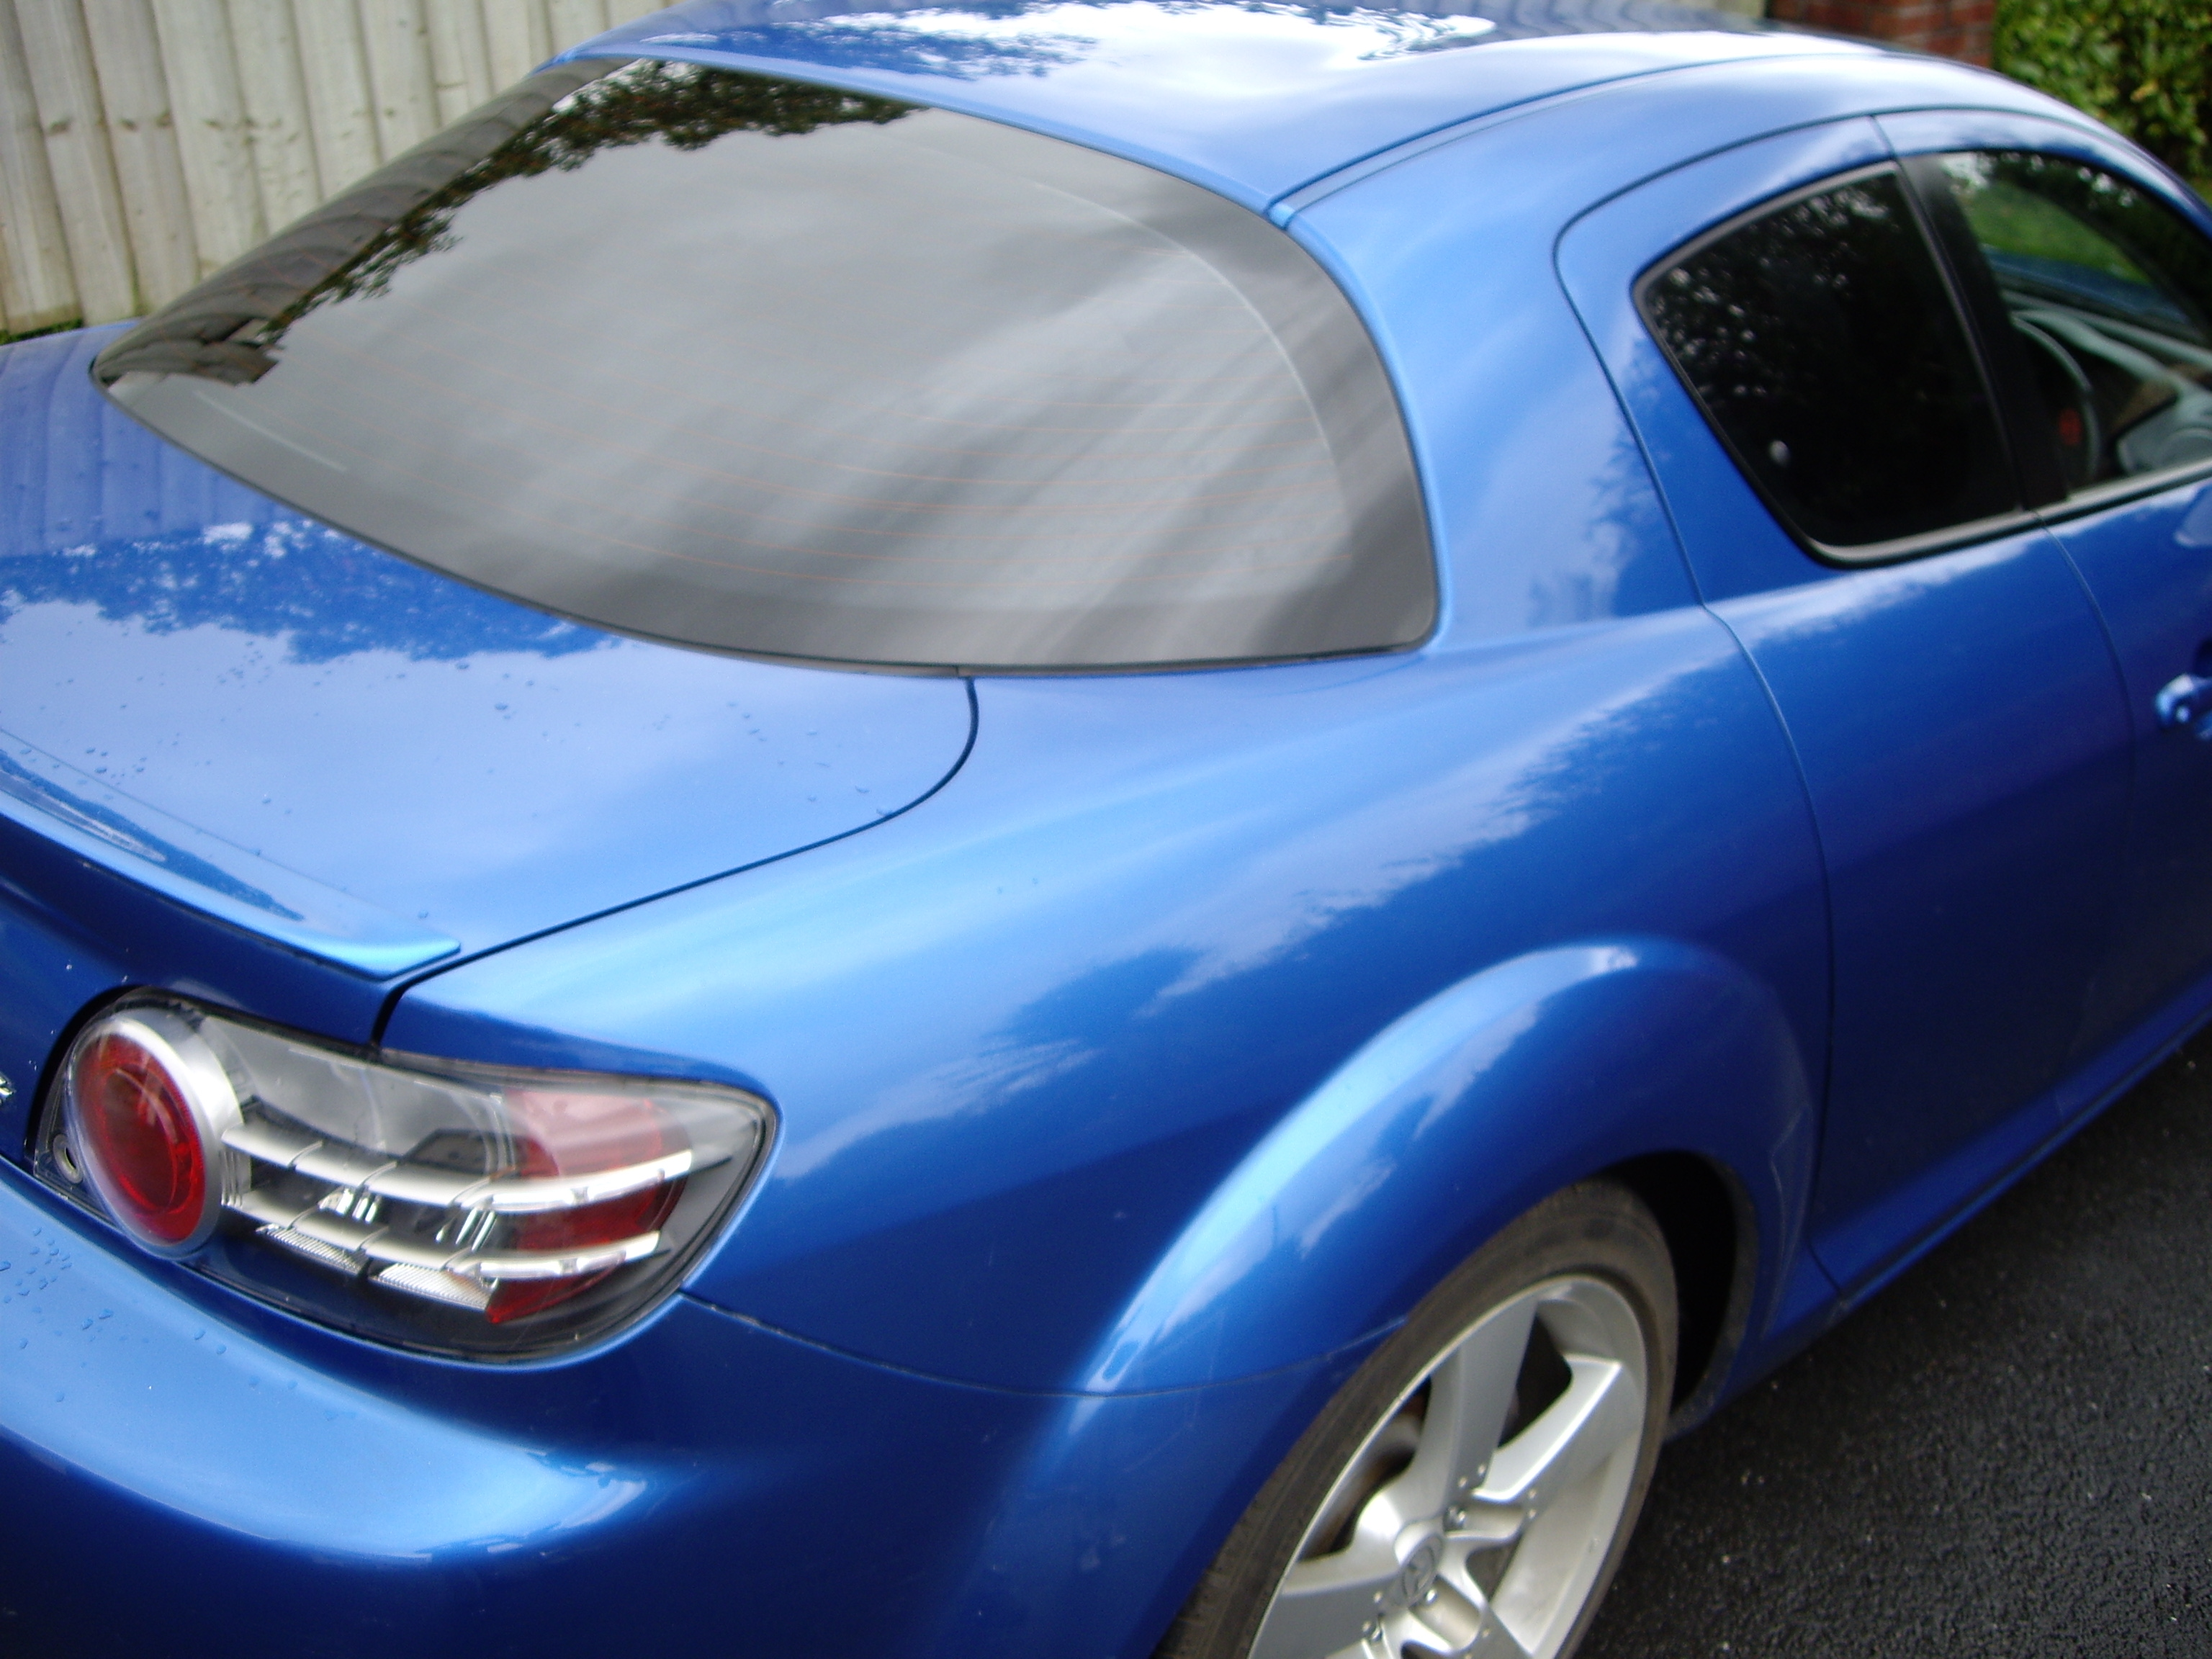 Mazda RX8 limo tint window film application Tinting Express Ltd